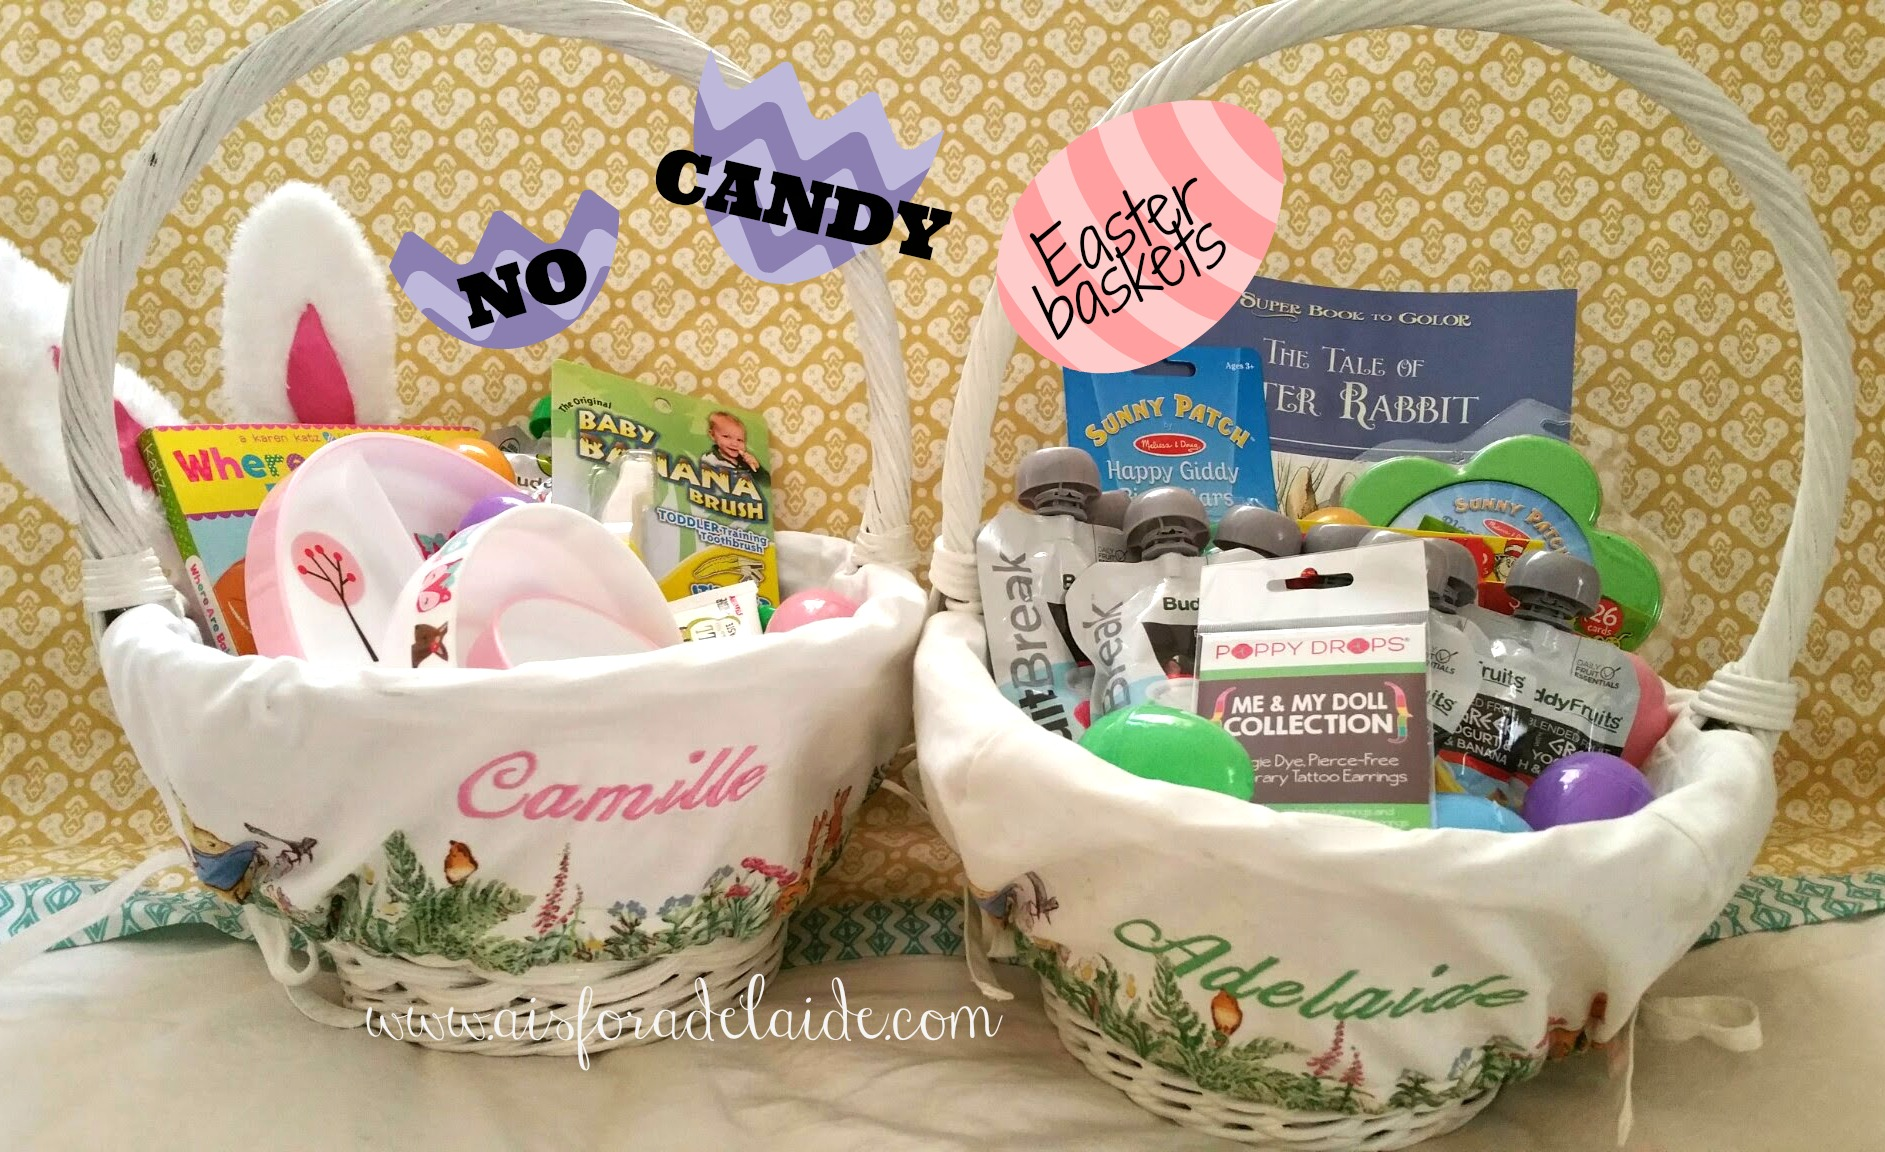 Baby gift baskets kaloo new baby gift baskets organic moms and easter gift baskets south australia image collections negle Choice Image